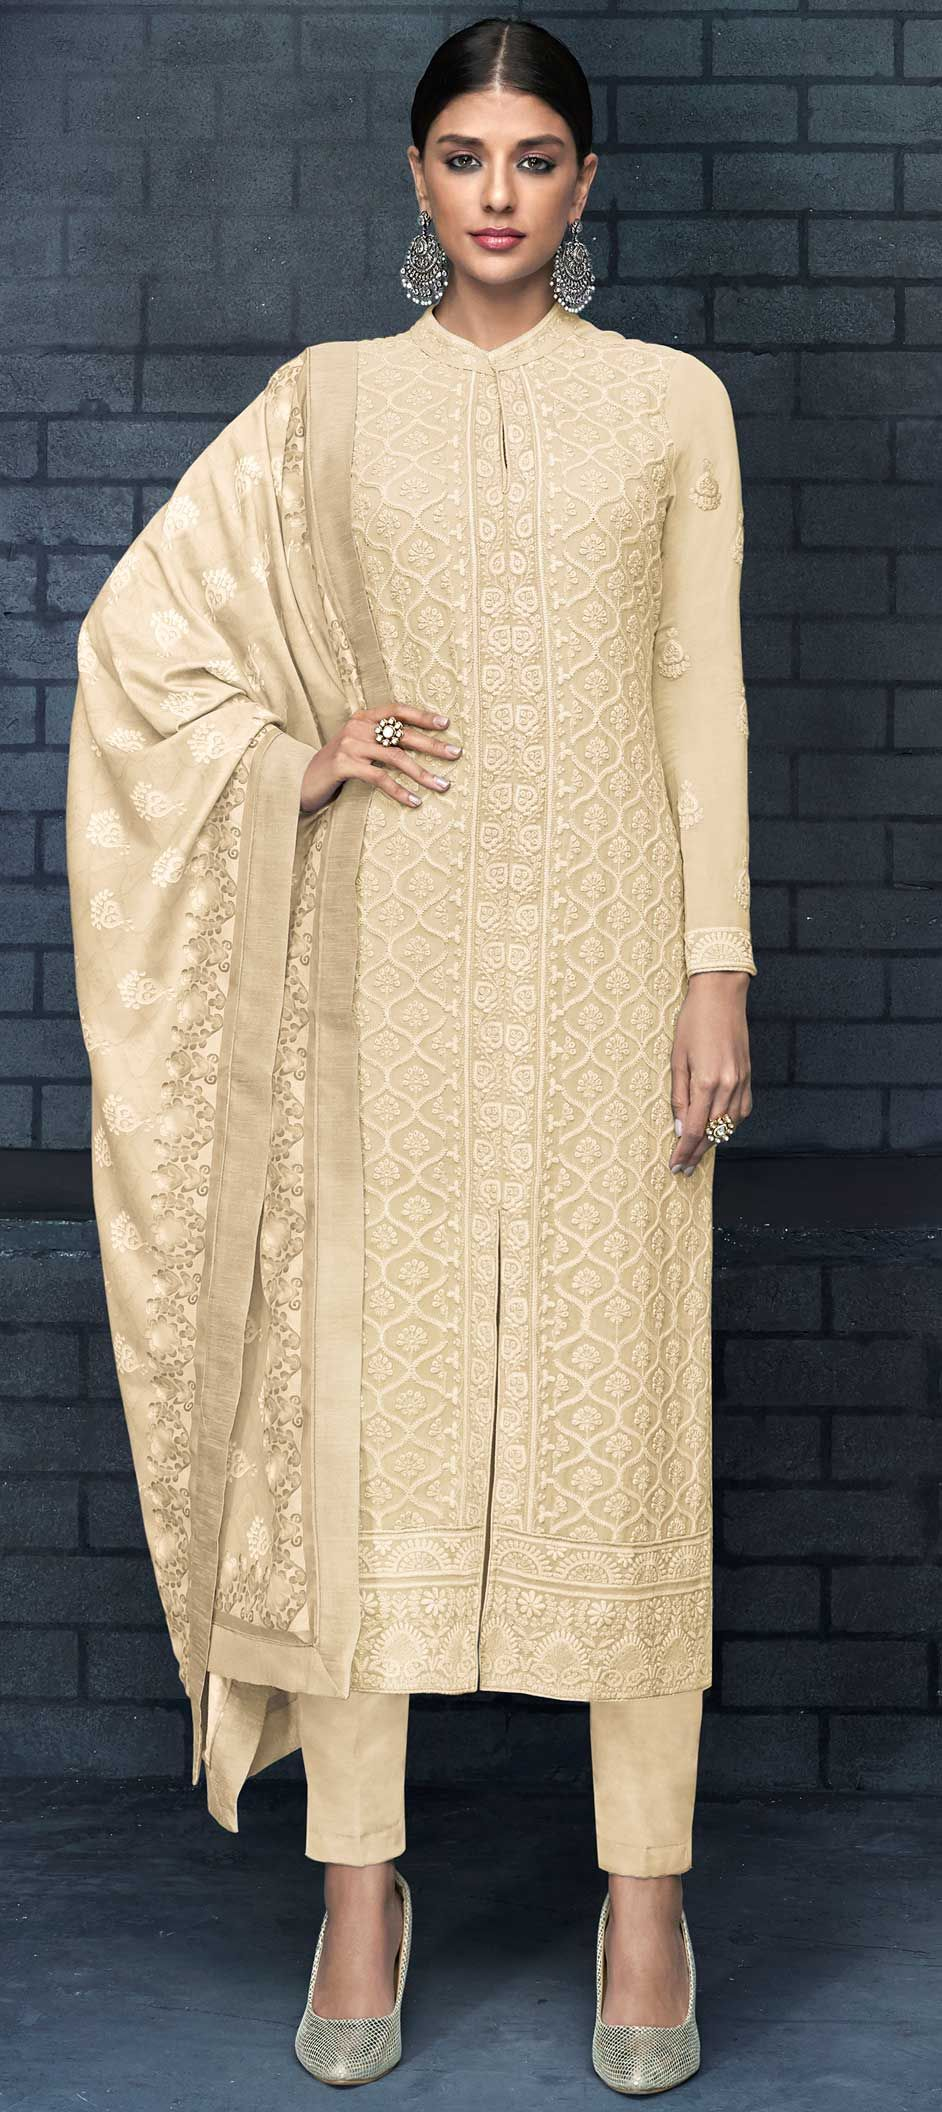 Faux Georgette Party Wear Salwar Kameez In Beige And Brown With Resham Work Faux Georgette Party Wear Salwar Kameez in Beige and Brown with Resham work Brown Things brown color salwar kameez